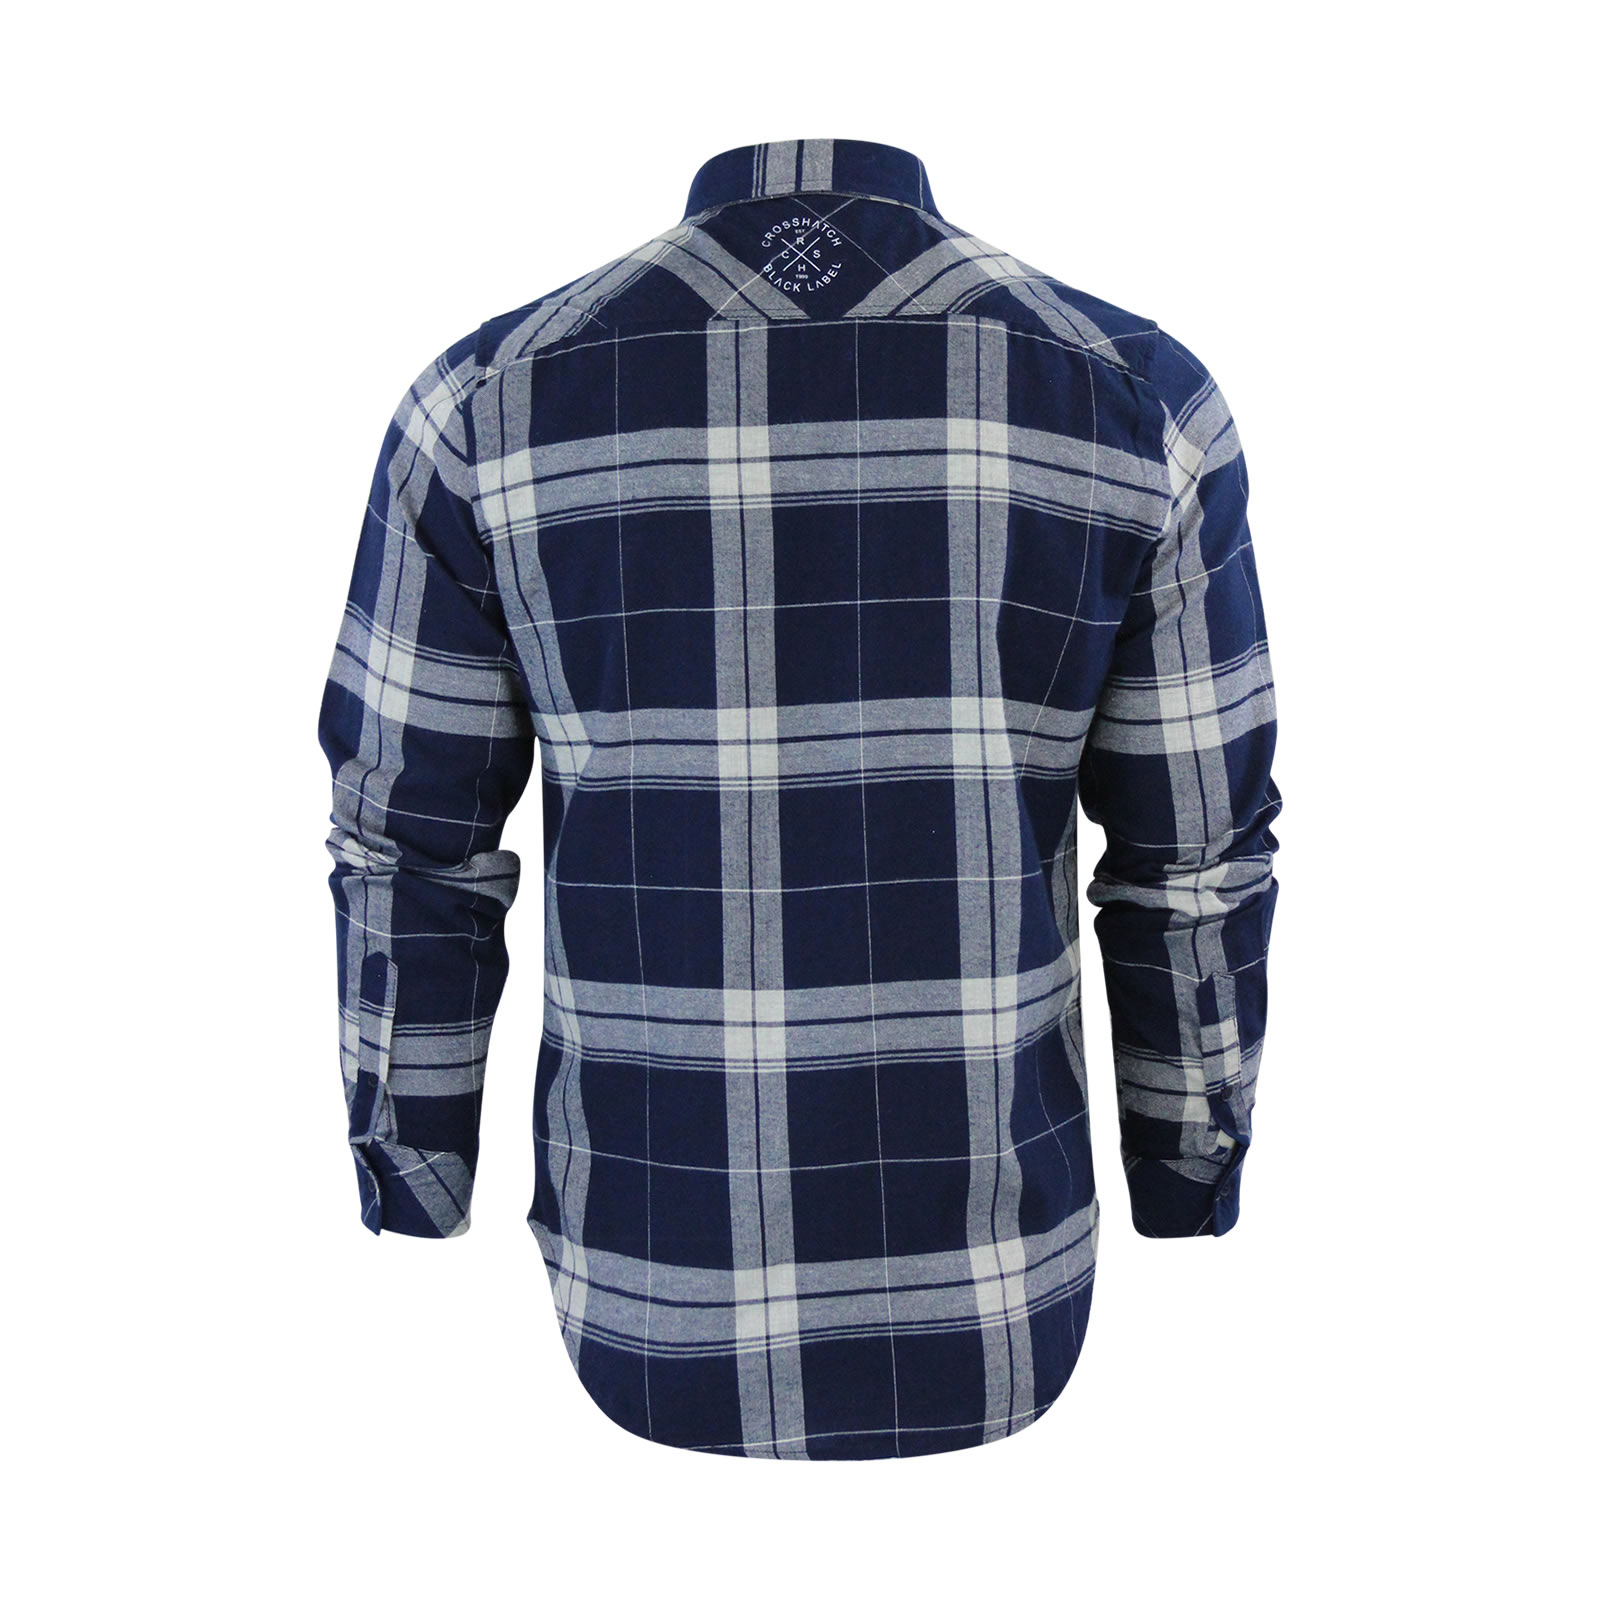 Homme-chemise-a-carreaux-crosshatch-mitty-coton-a-col-a-manches-longues-top-casual miniature 3